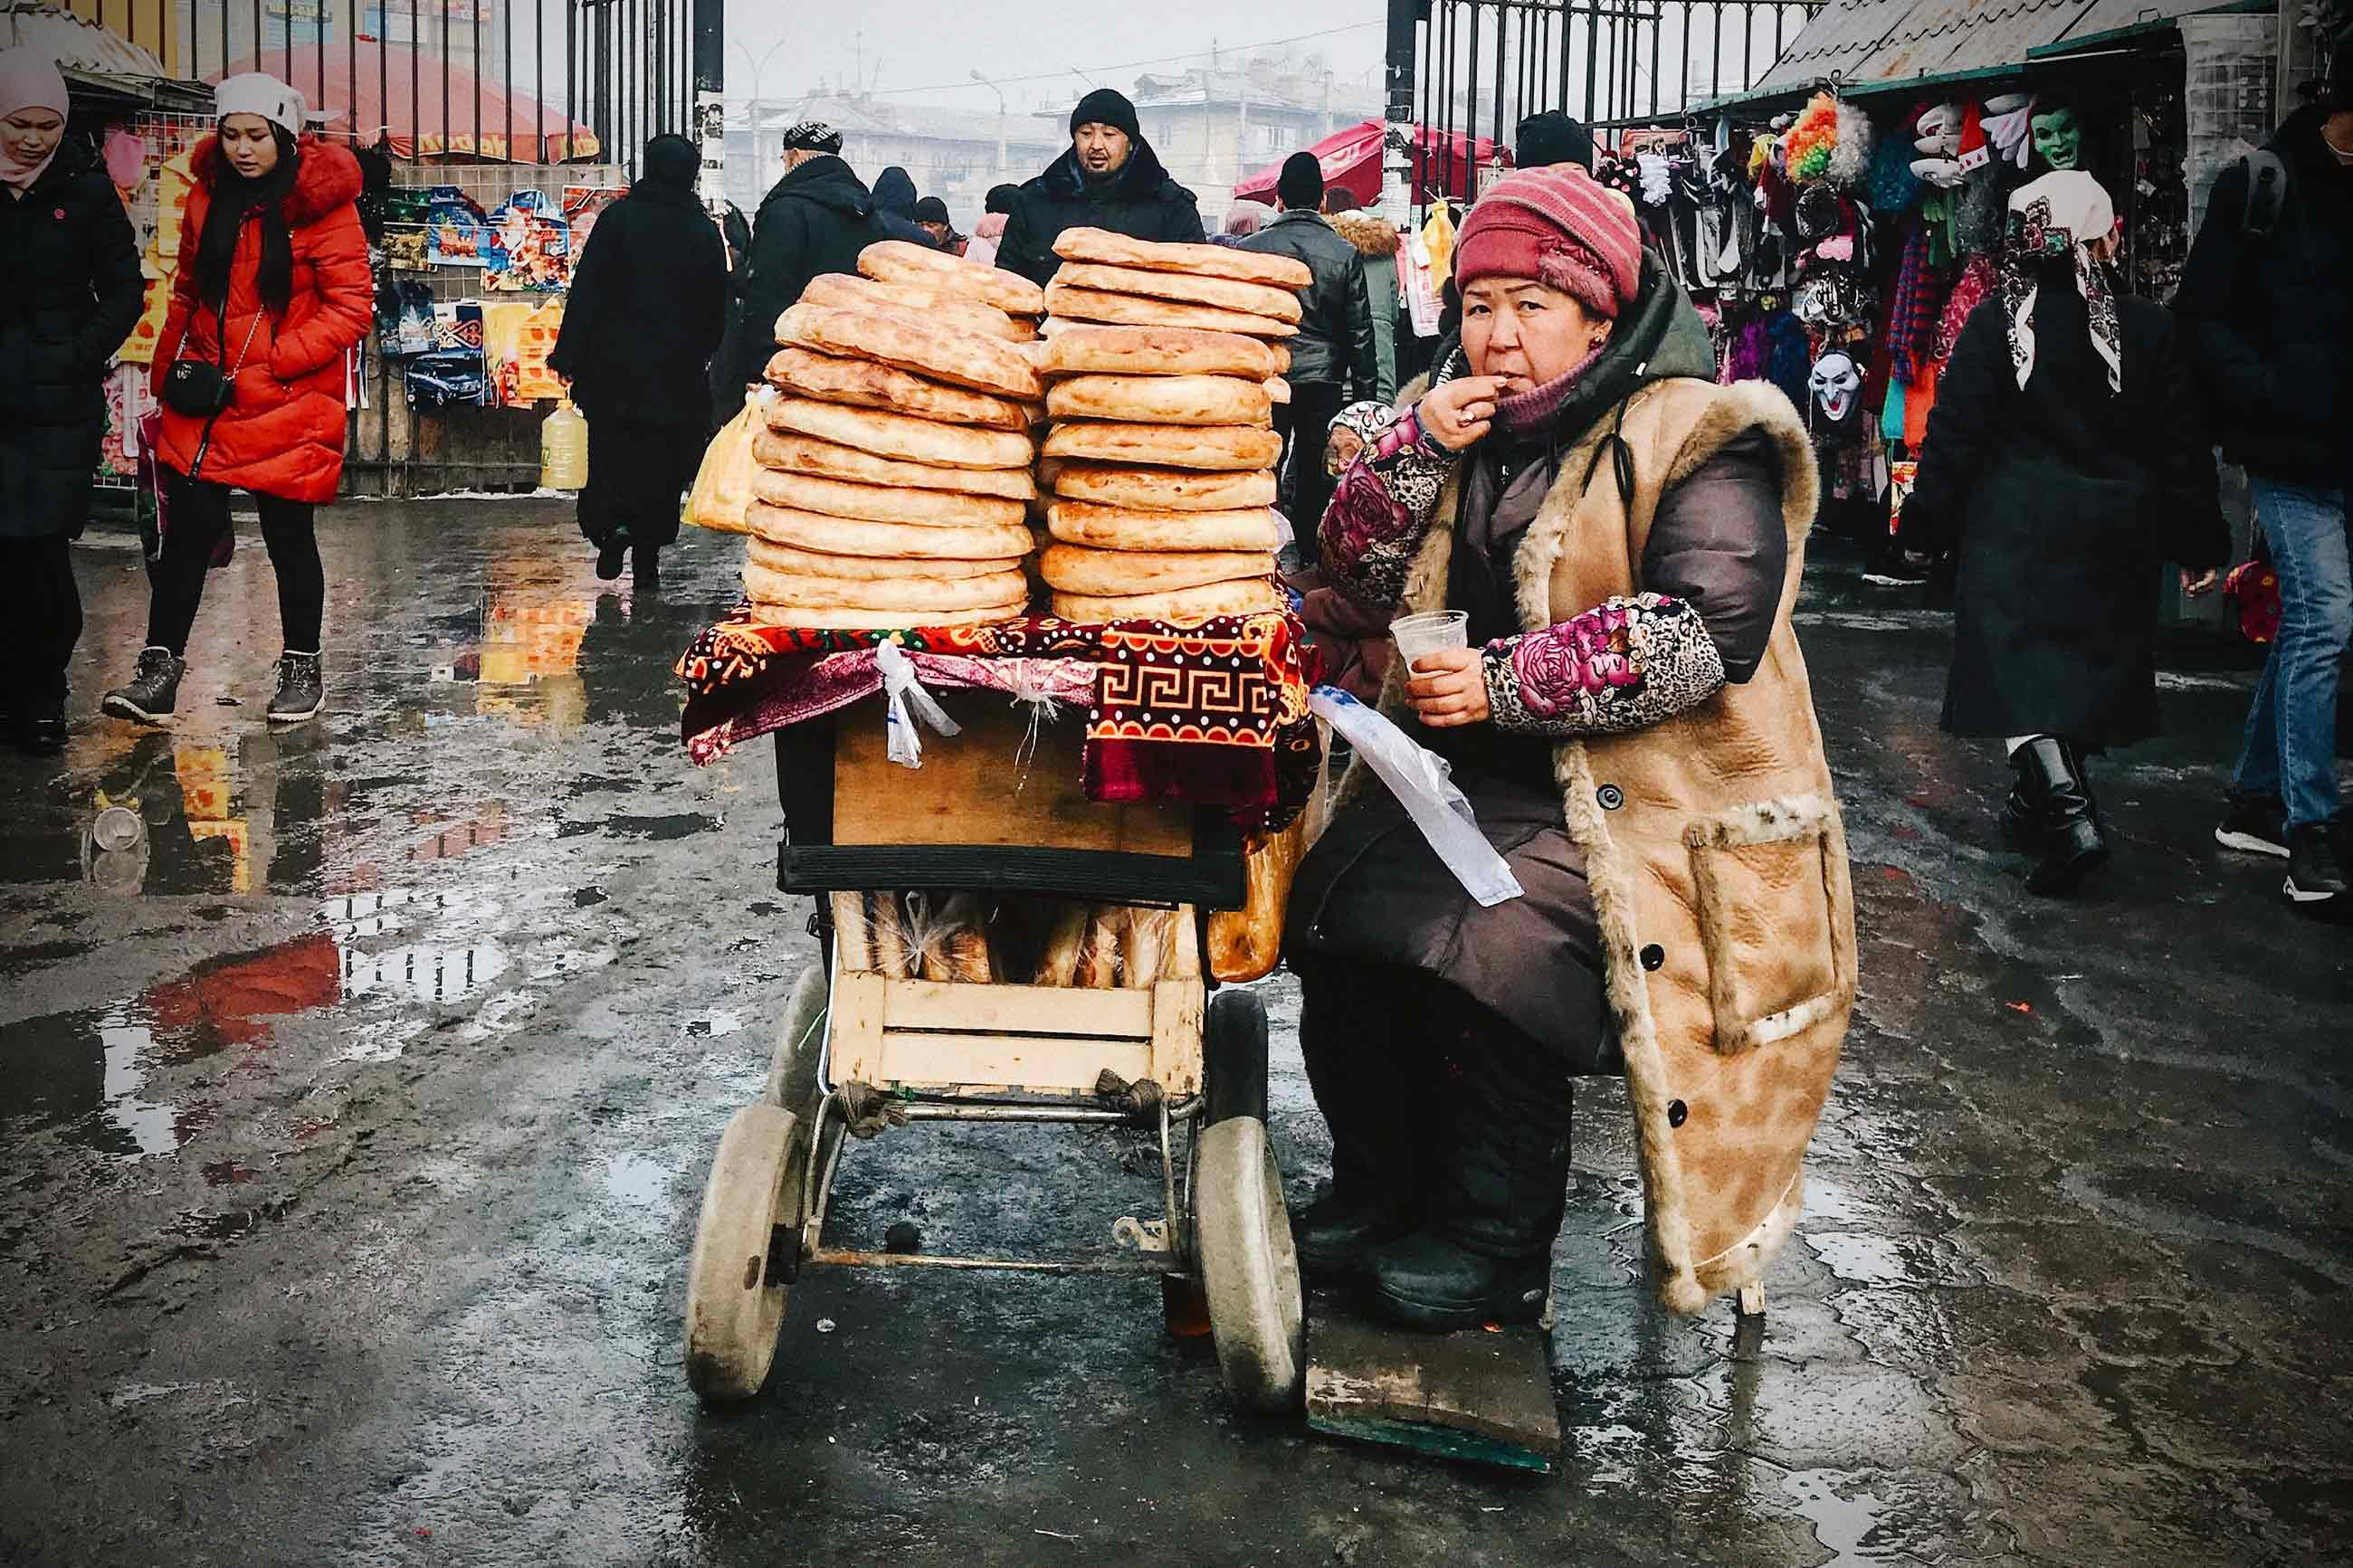 irene strong unsplash - <b>Kyrgyzstan's New President,</b> His Criminal Past and How He Seized Parliament by Force: A Detailed Account - Заборона